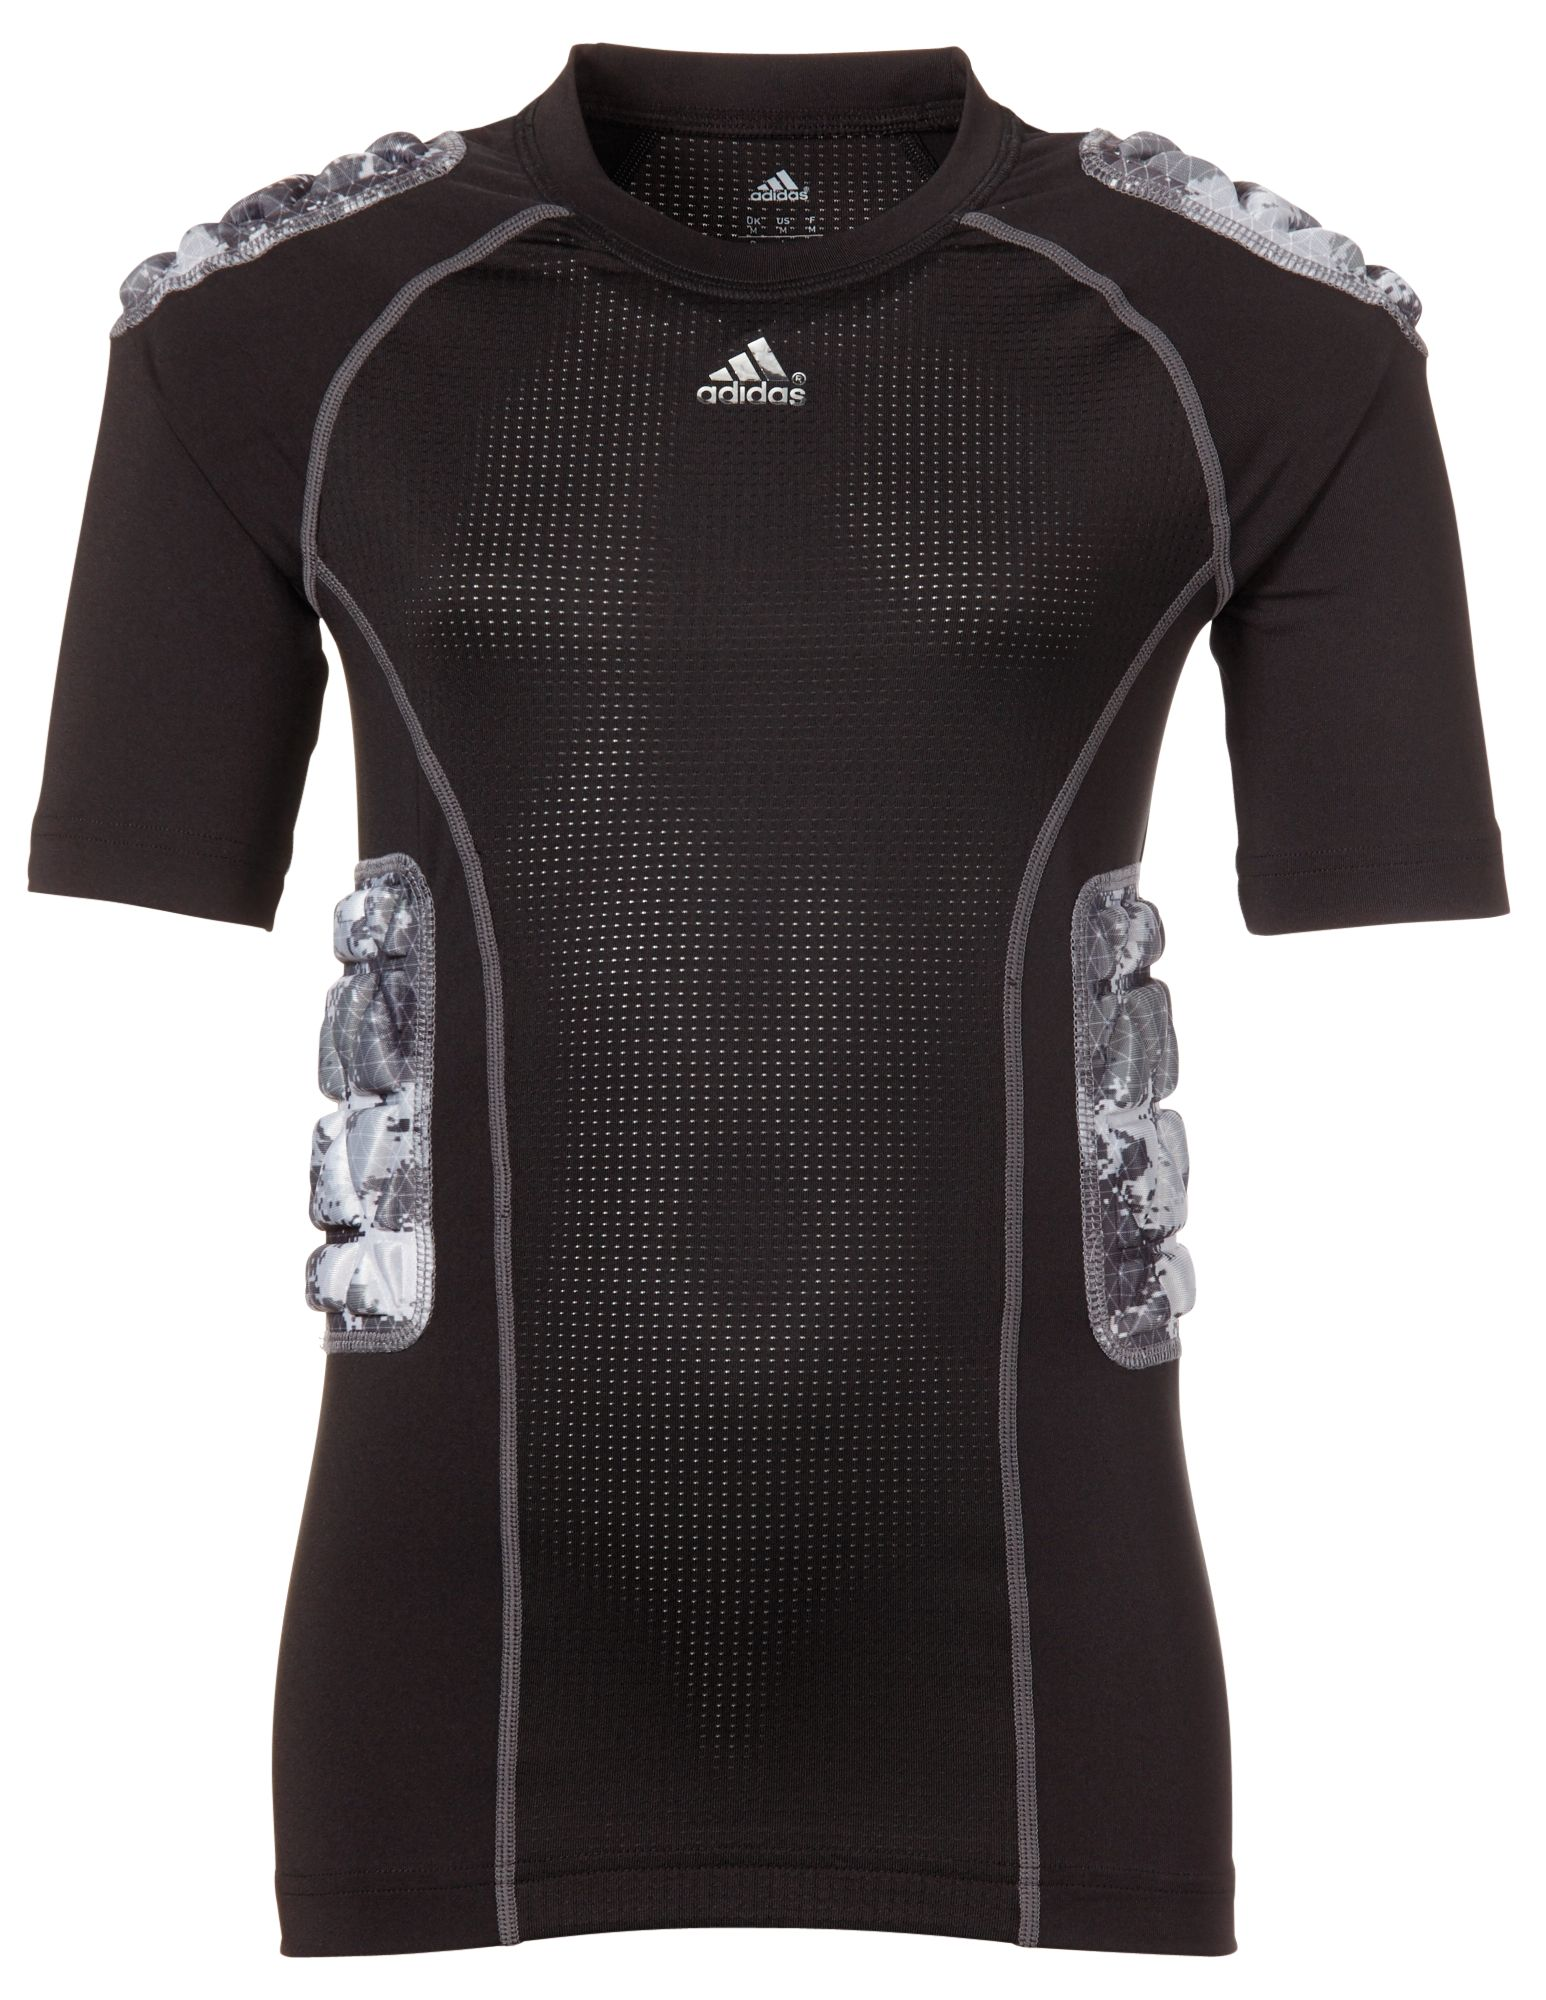 adidas Youth Padded techfit Camo Football Shirt, Black thumbnail